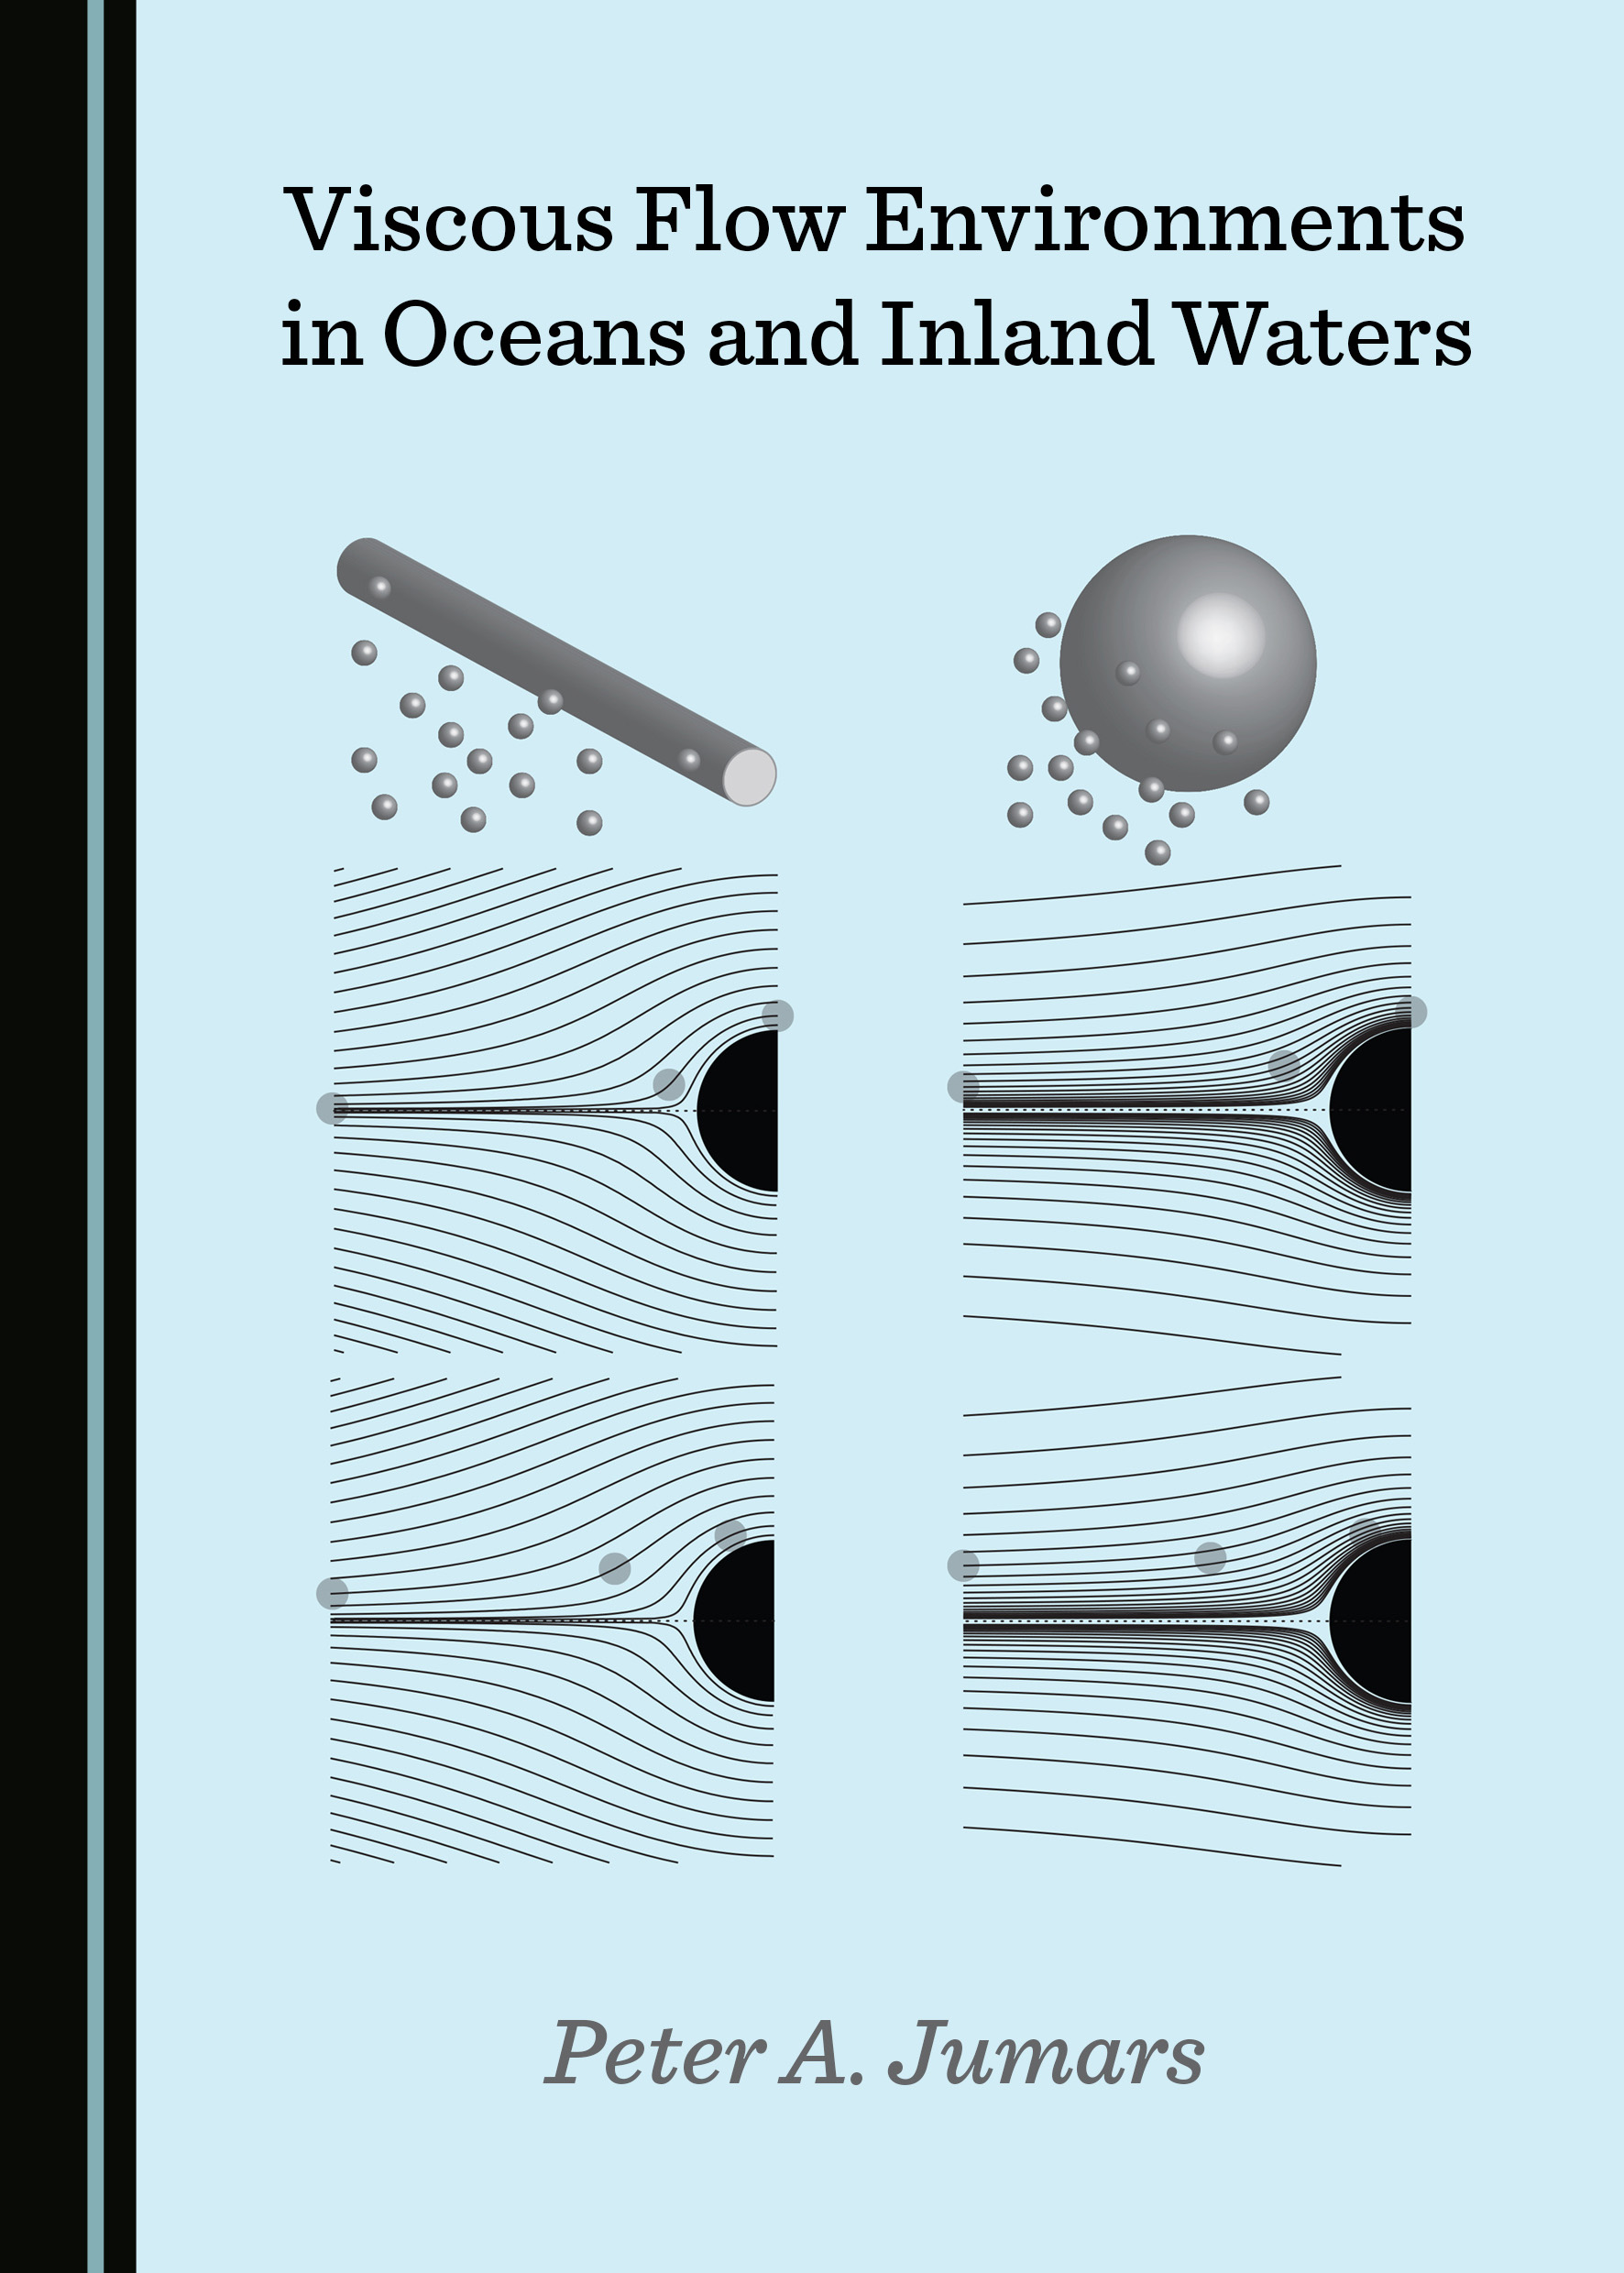 Viscous Flow Environments in Oceans and Inland Waters